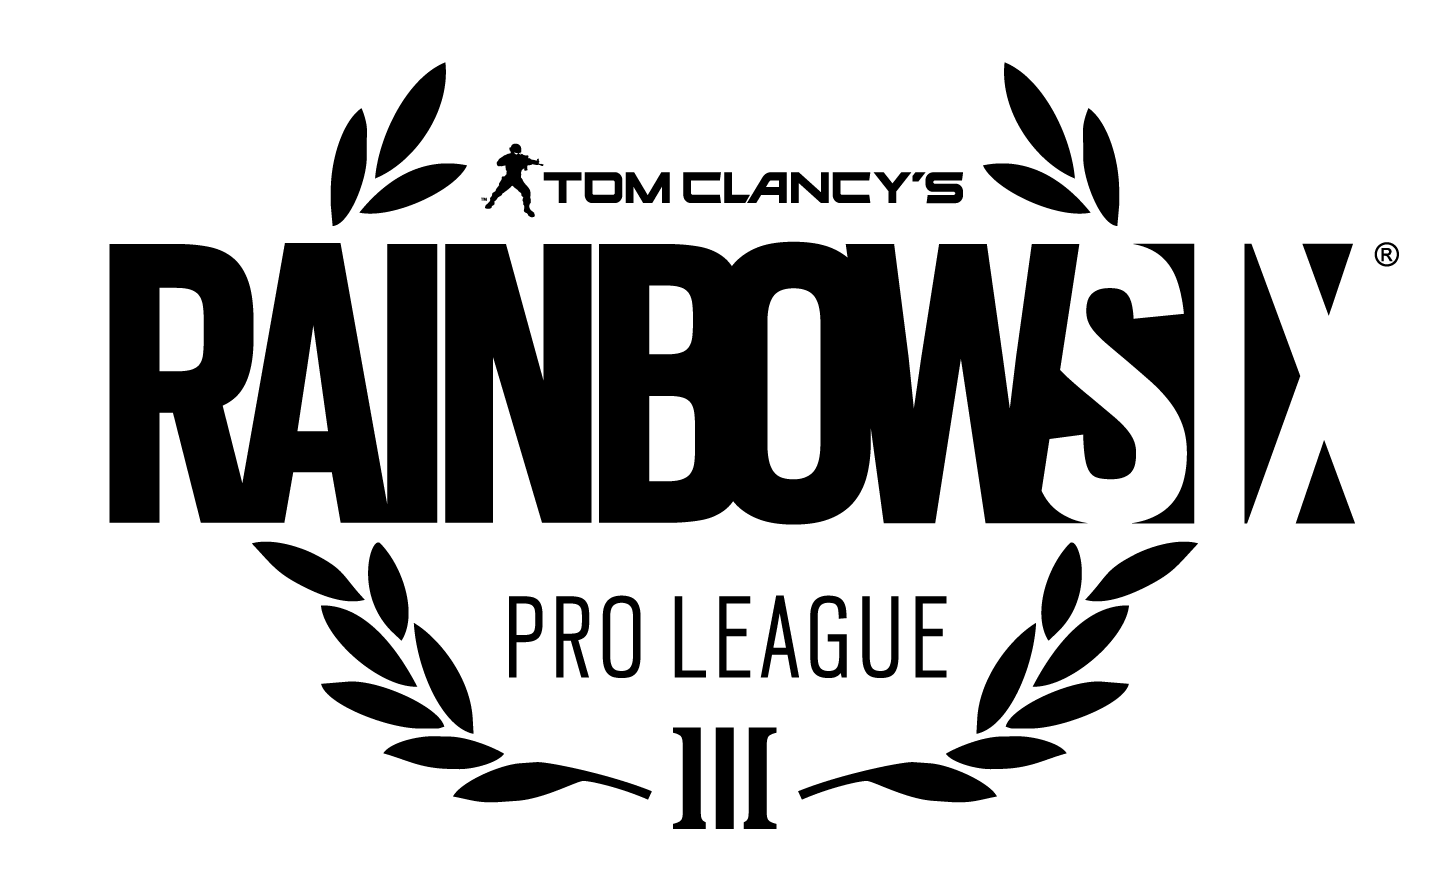 ESL - Pro League - by INTI